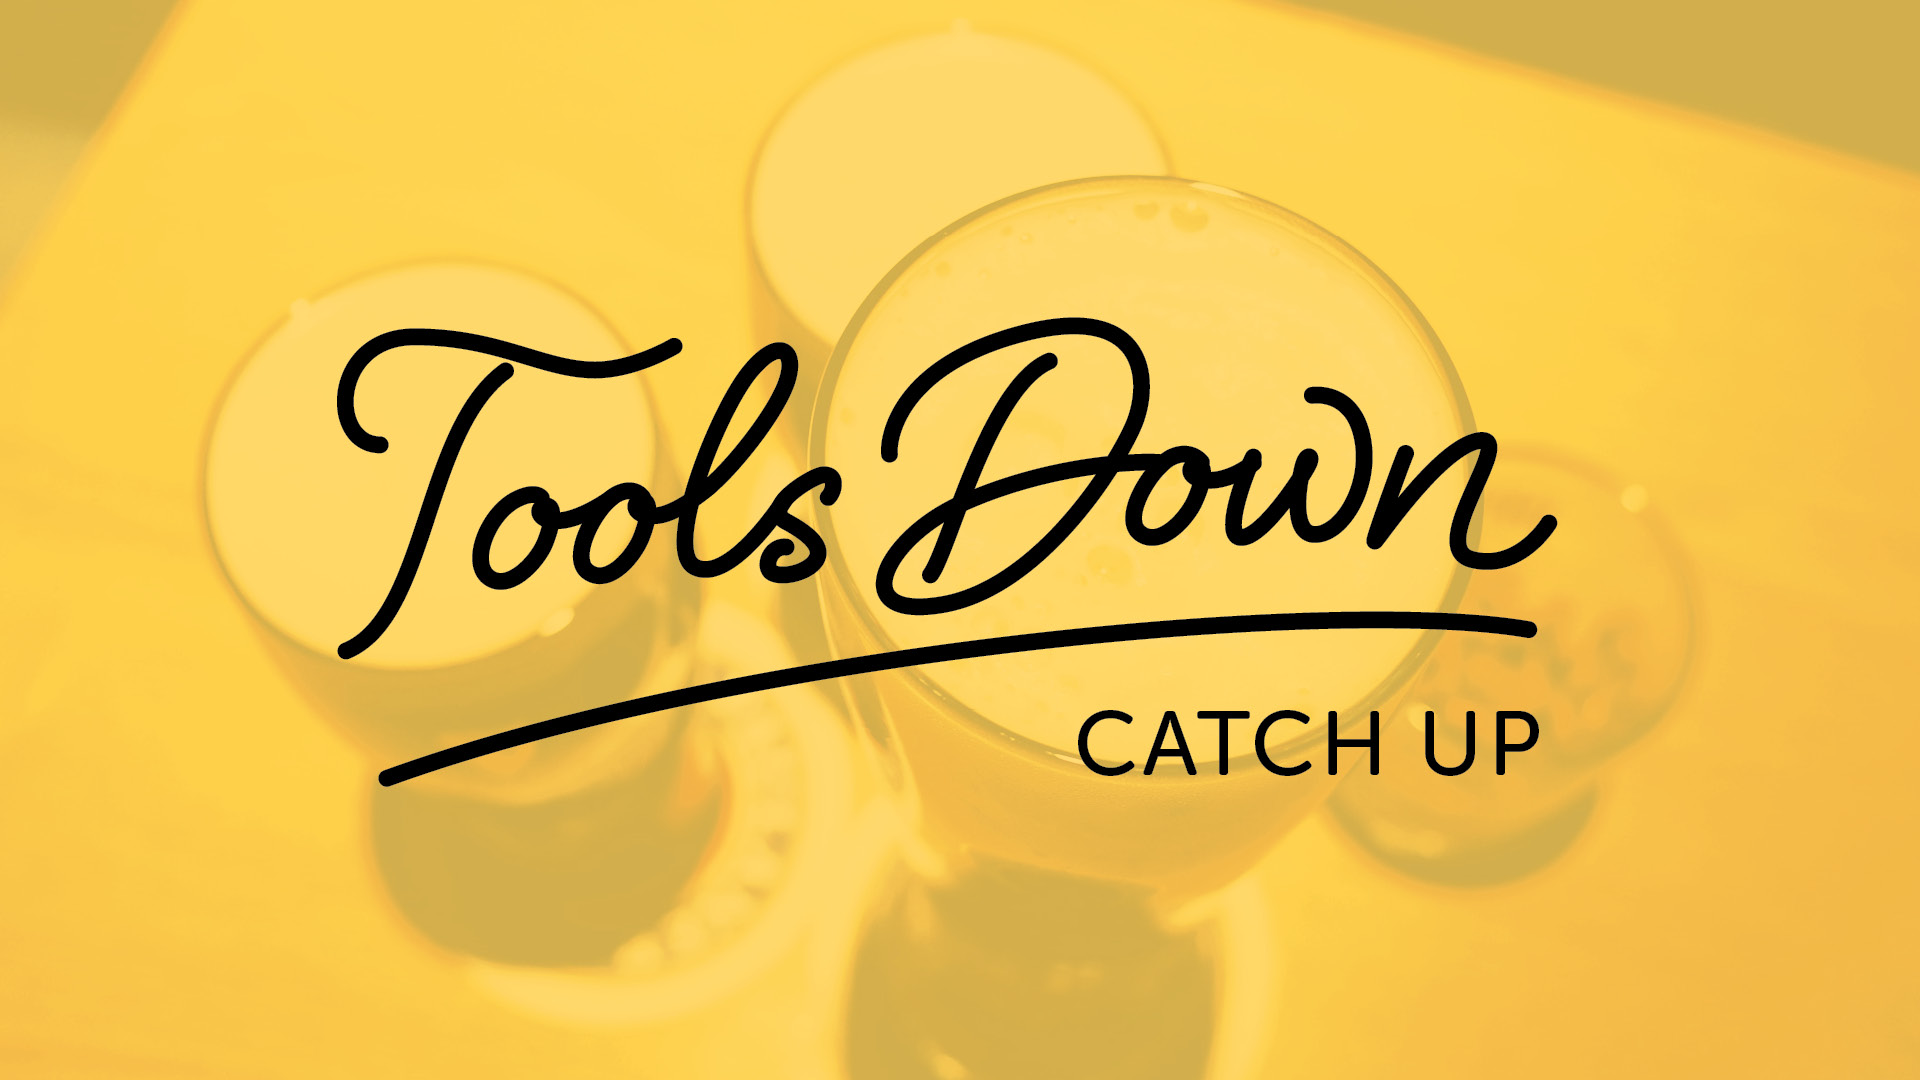 'Tools Down Catch Up'  Branding and Identity